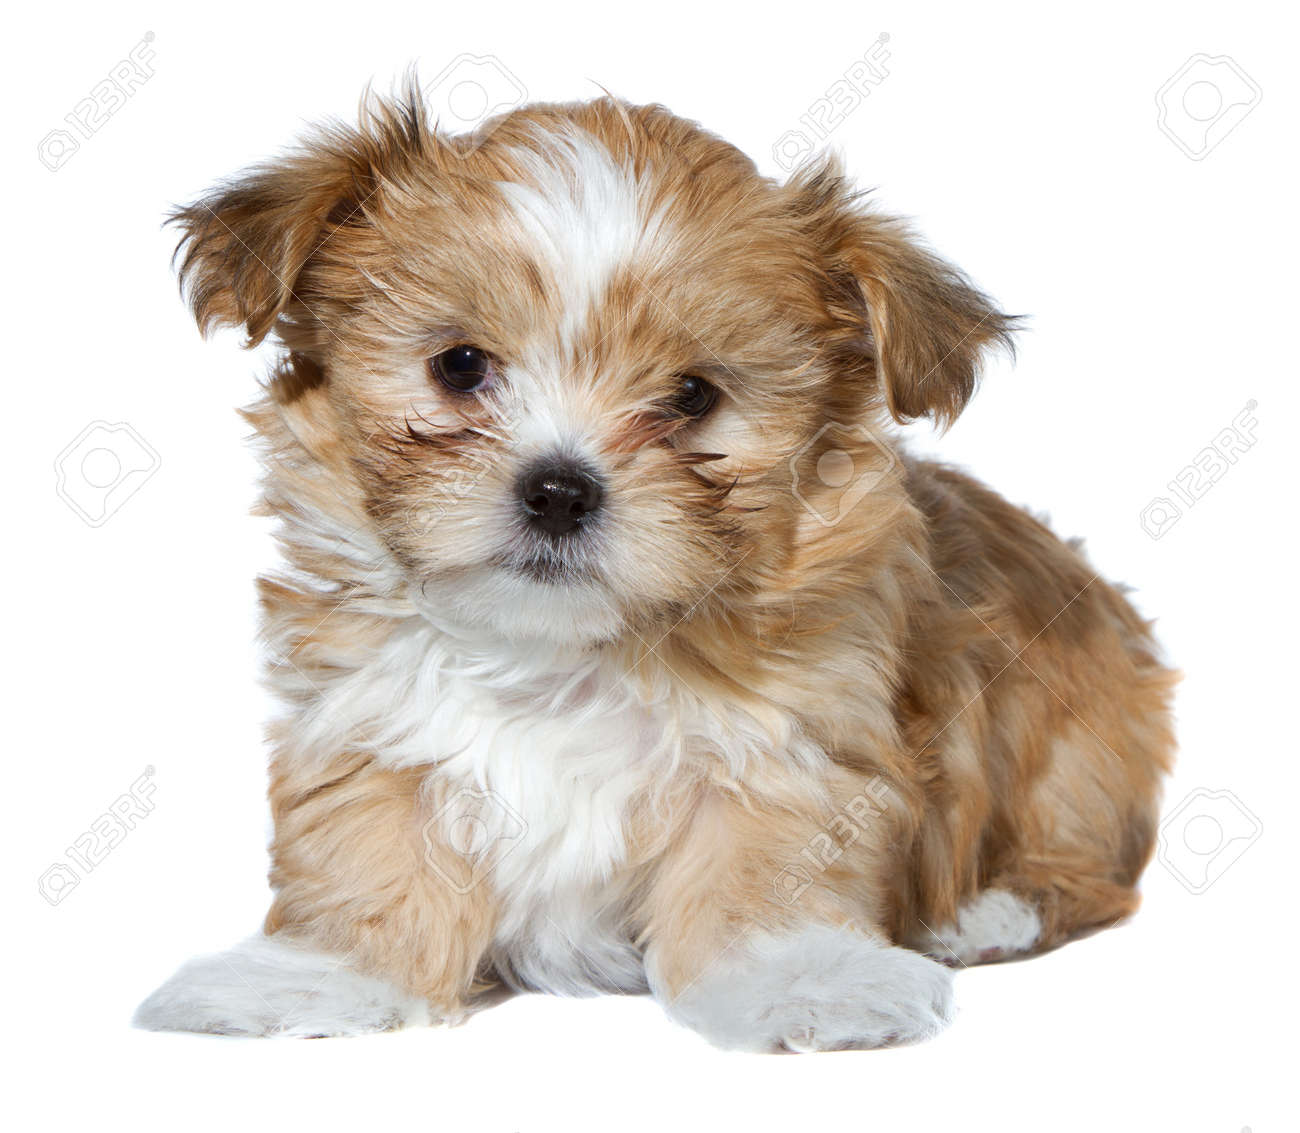 Best Fluffy Brown Adorable Dog - 12157520-a-cute-brown-and-white-fluffy-puppy-isolated-on-a-white-background  Pic_975466  .jpg